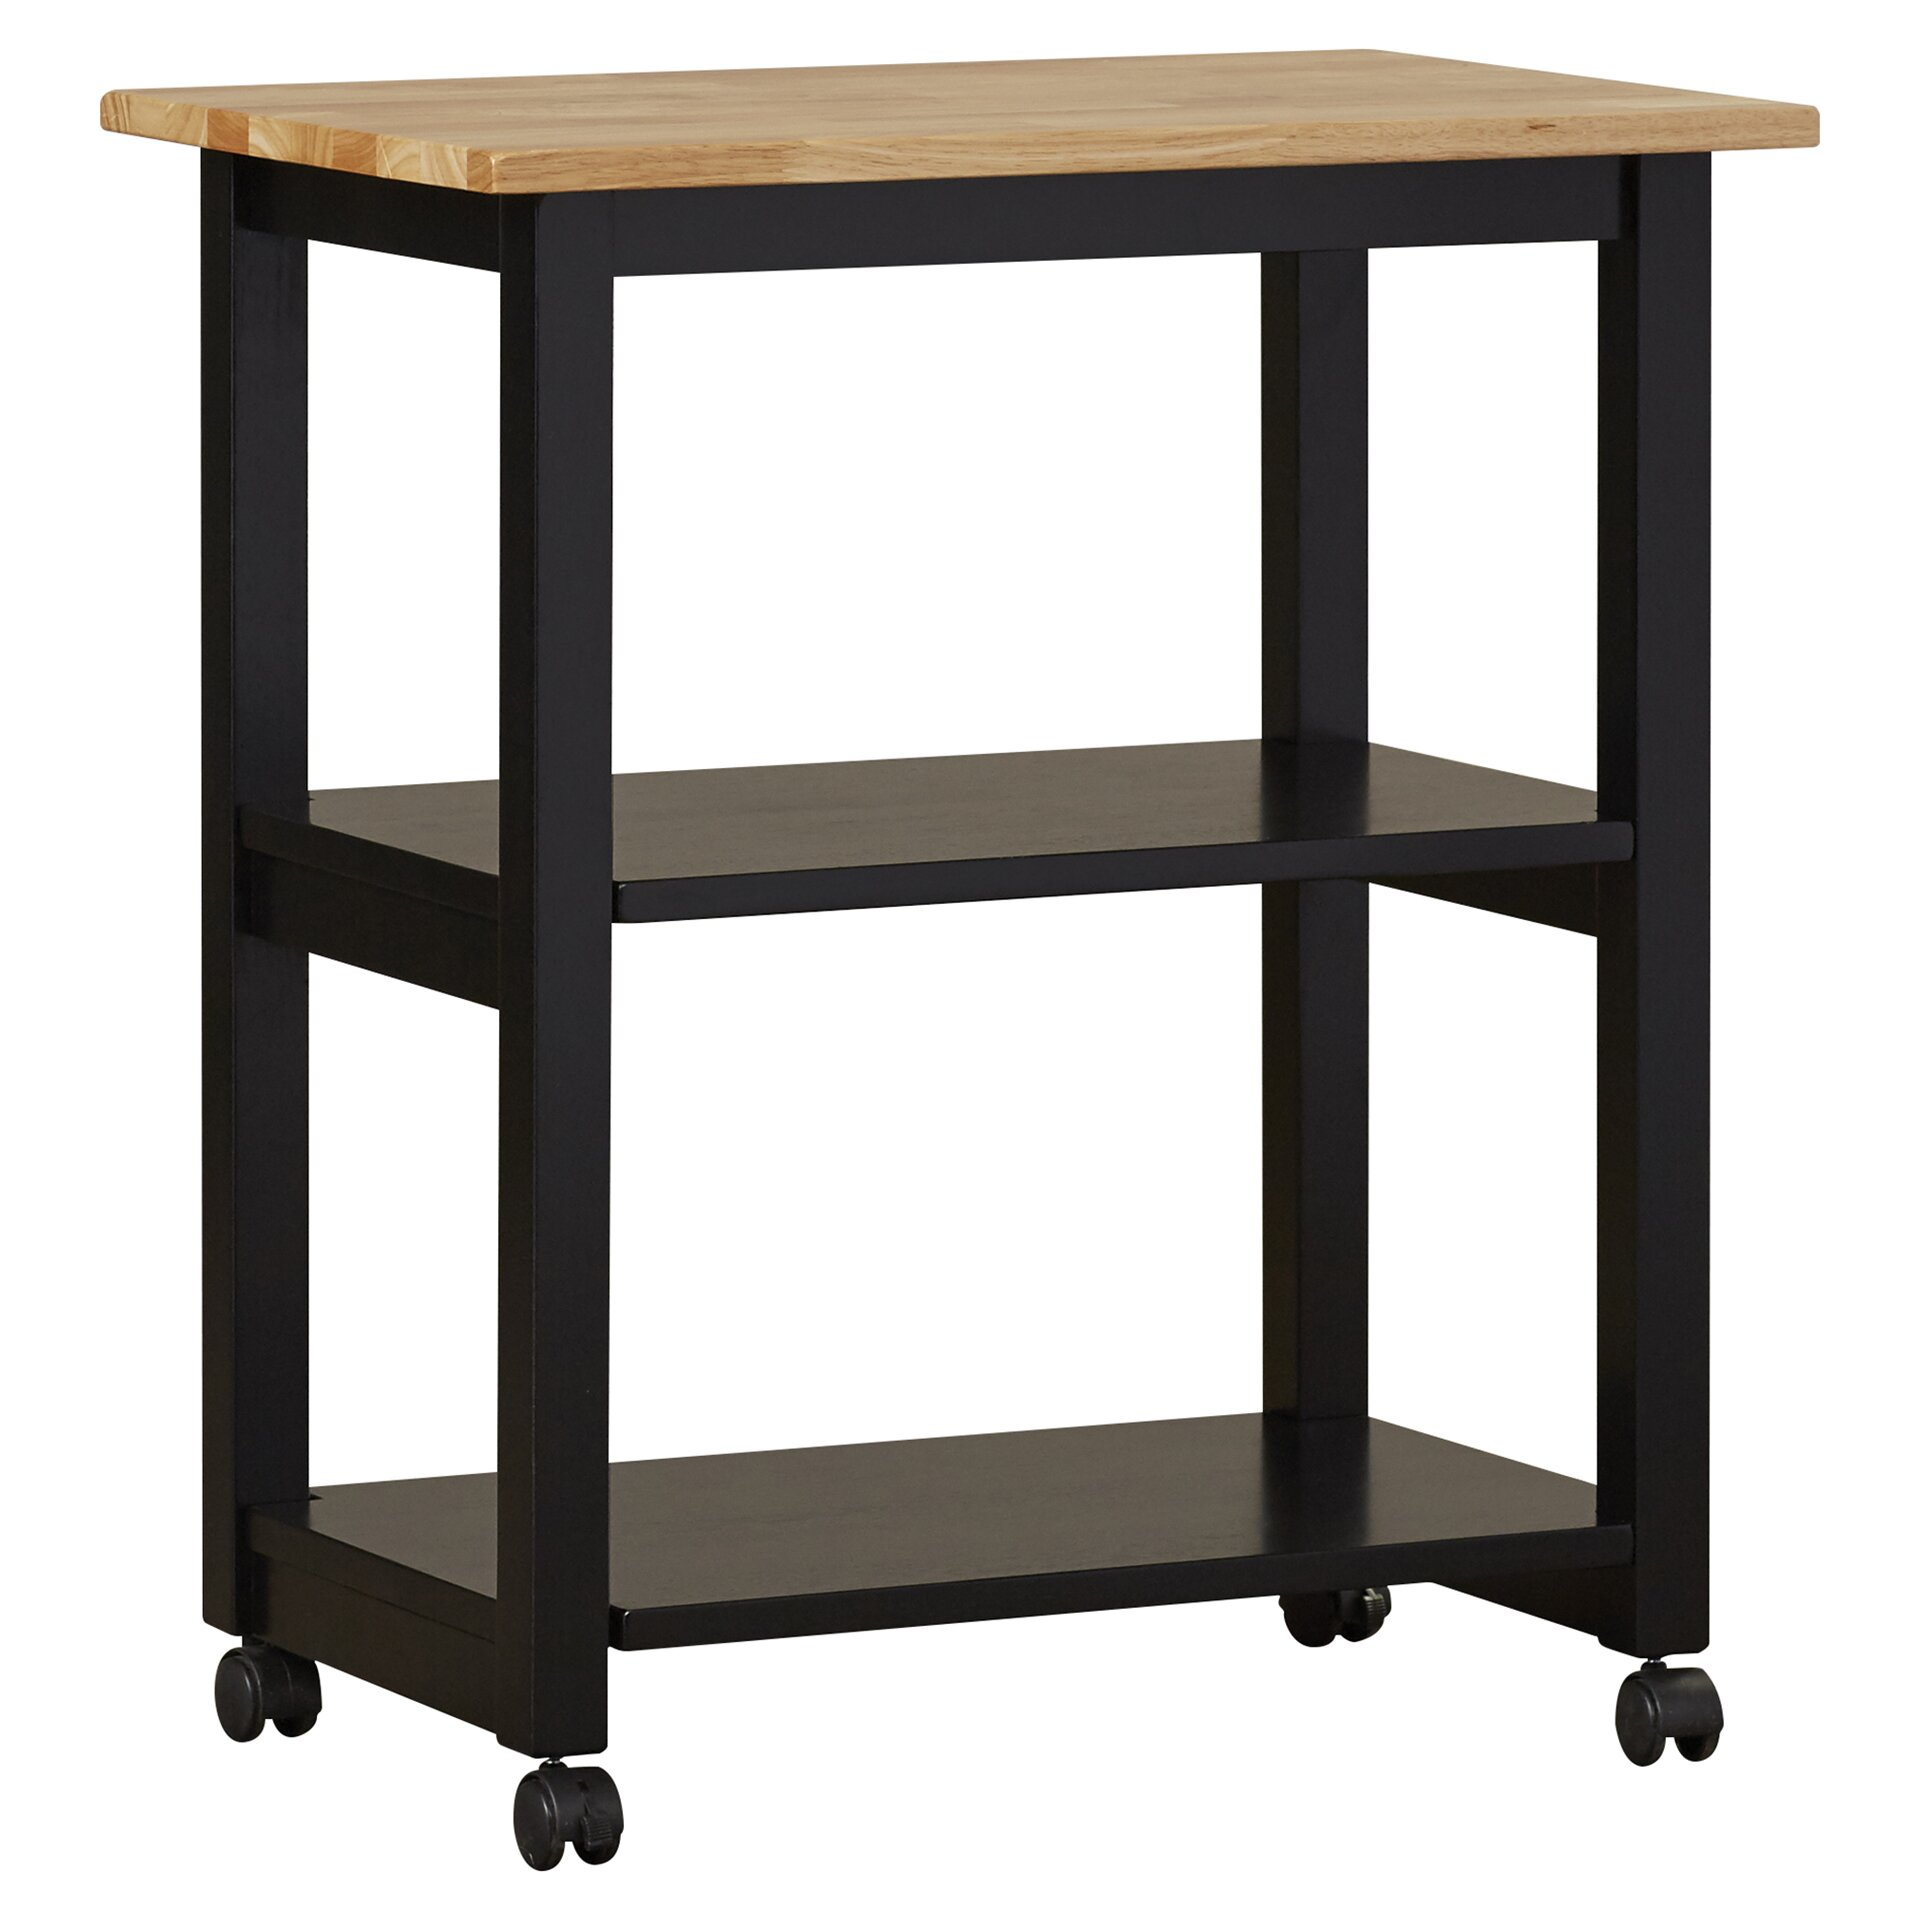 Kitchen Trolley Butcher Block : August Grove De Soto Kitchen Cart with Butcher Block Top & Reviews Wayfair